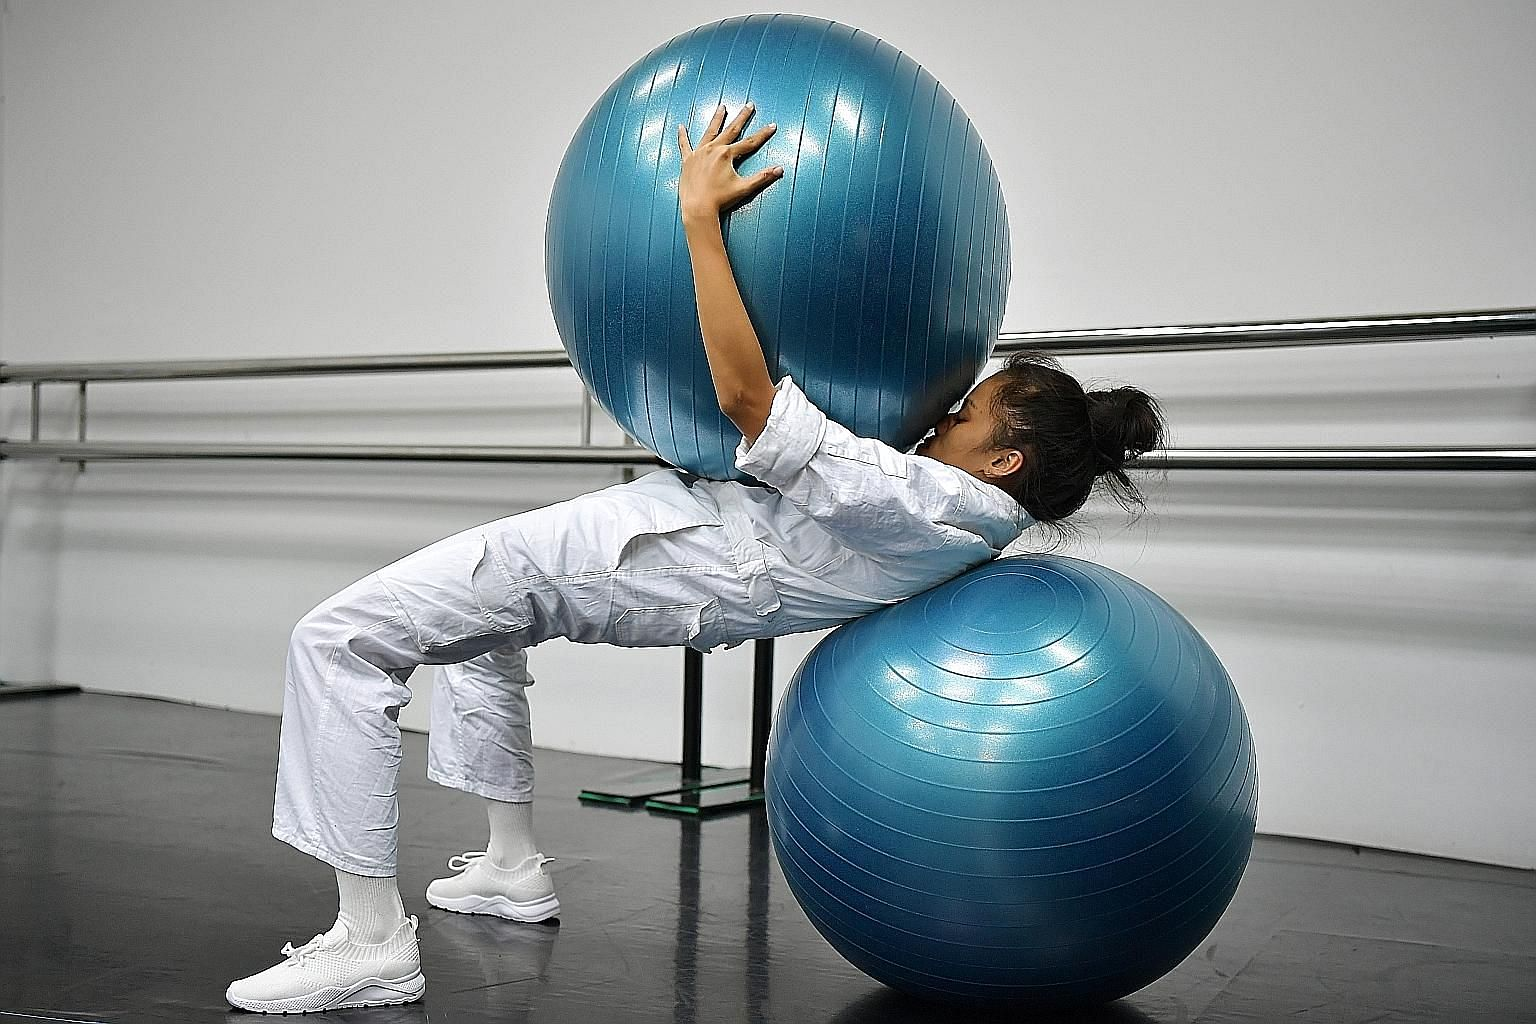 In Being, And Organs, dancer Pichmutta Puangtongdee aims to balance herself atop two exercise balls to depict her uneasy navigation between humanity and technology.